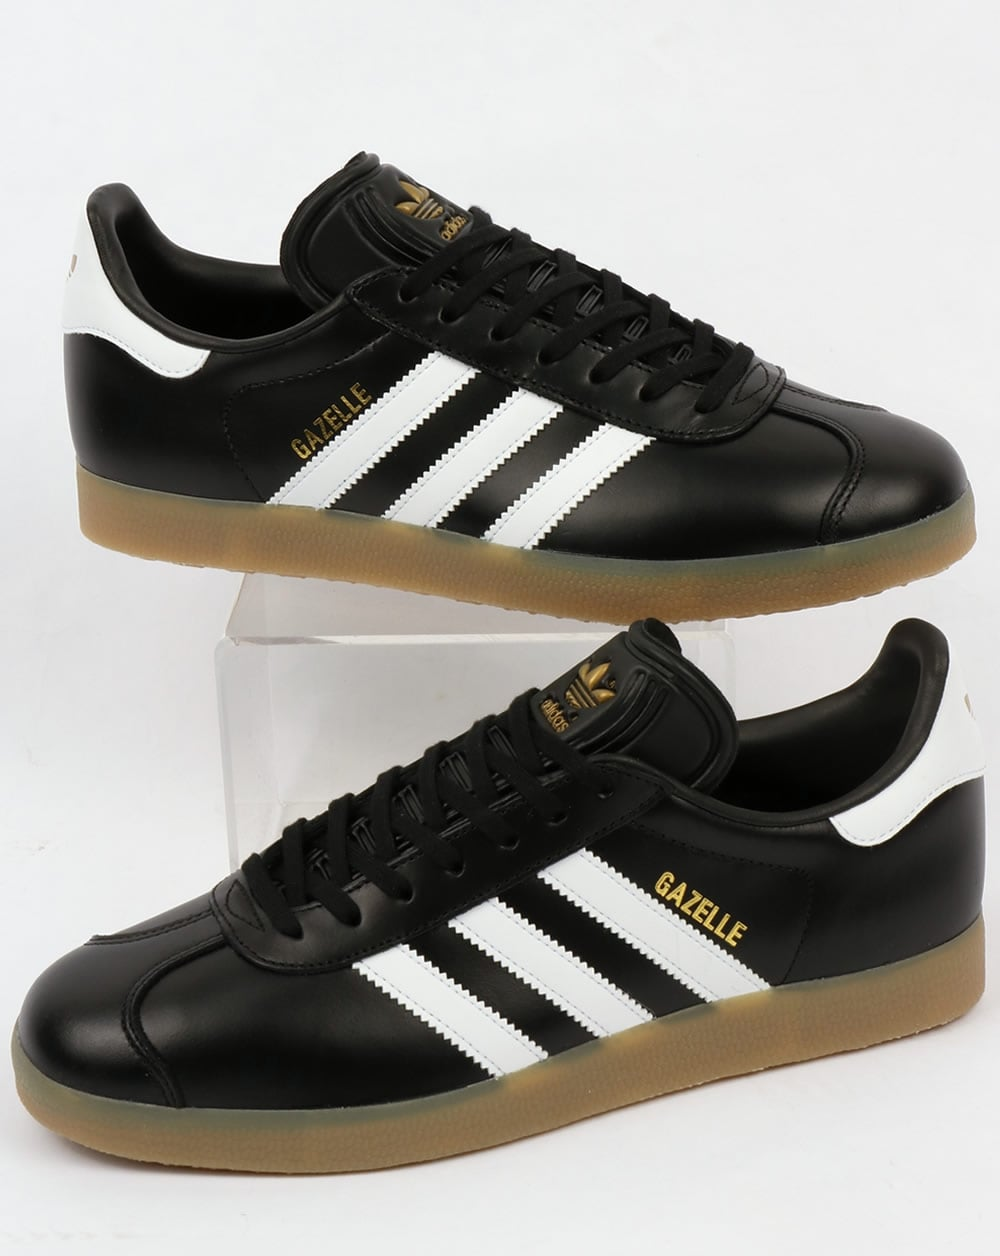 huge discount 6b56d 8d0f6 adidas Trainers Adidas Gazelle Leather Trainers BlackWhite Gum